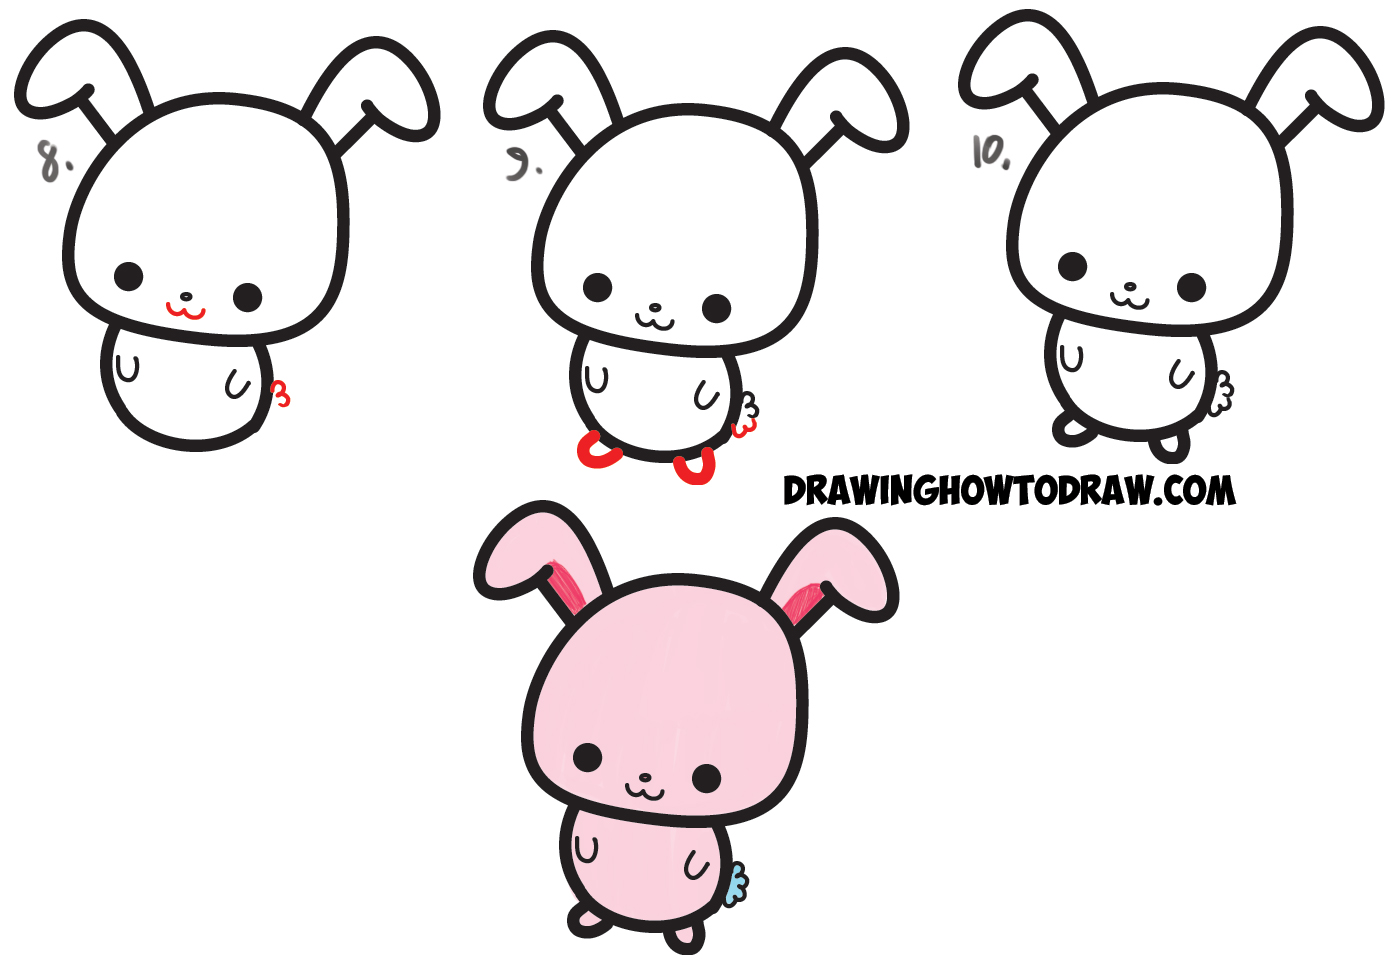 how to draw cute cartoon characters from semicolons easy